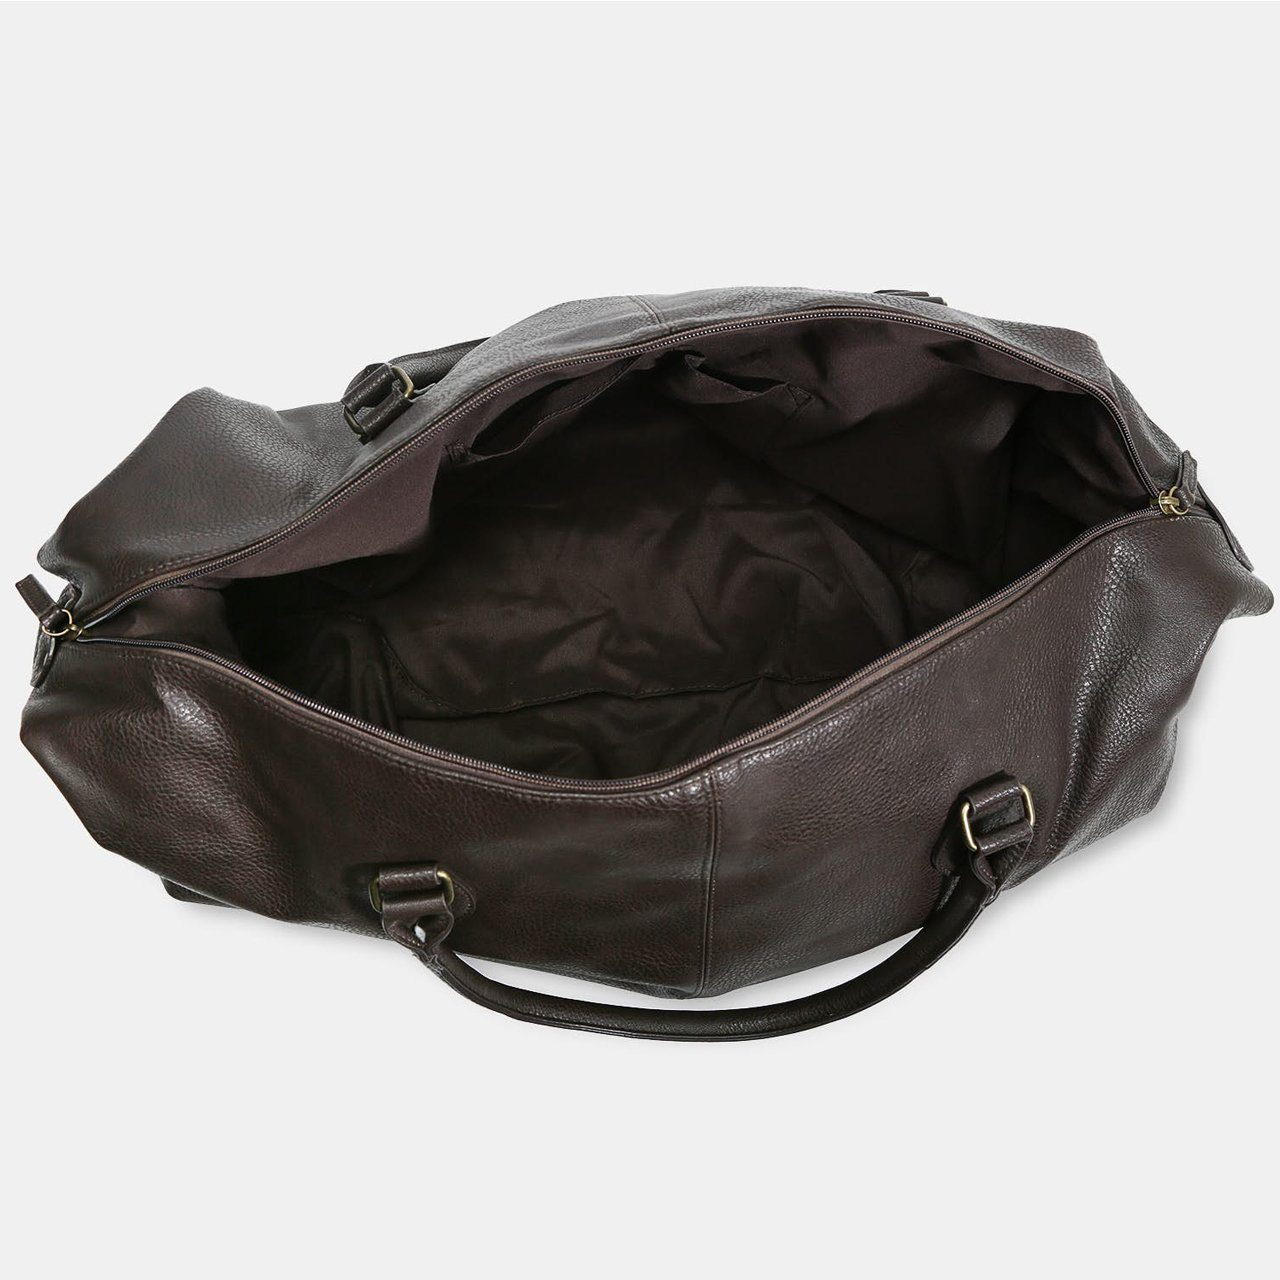 Duffle Bag - Gunner Vegan Leather Duffle Bag